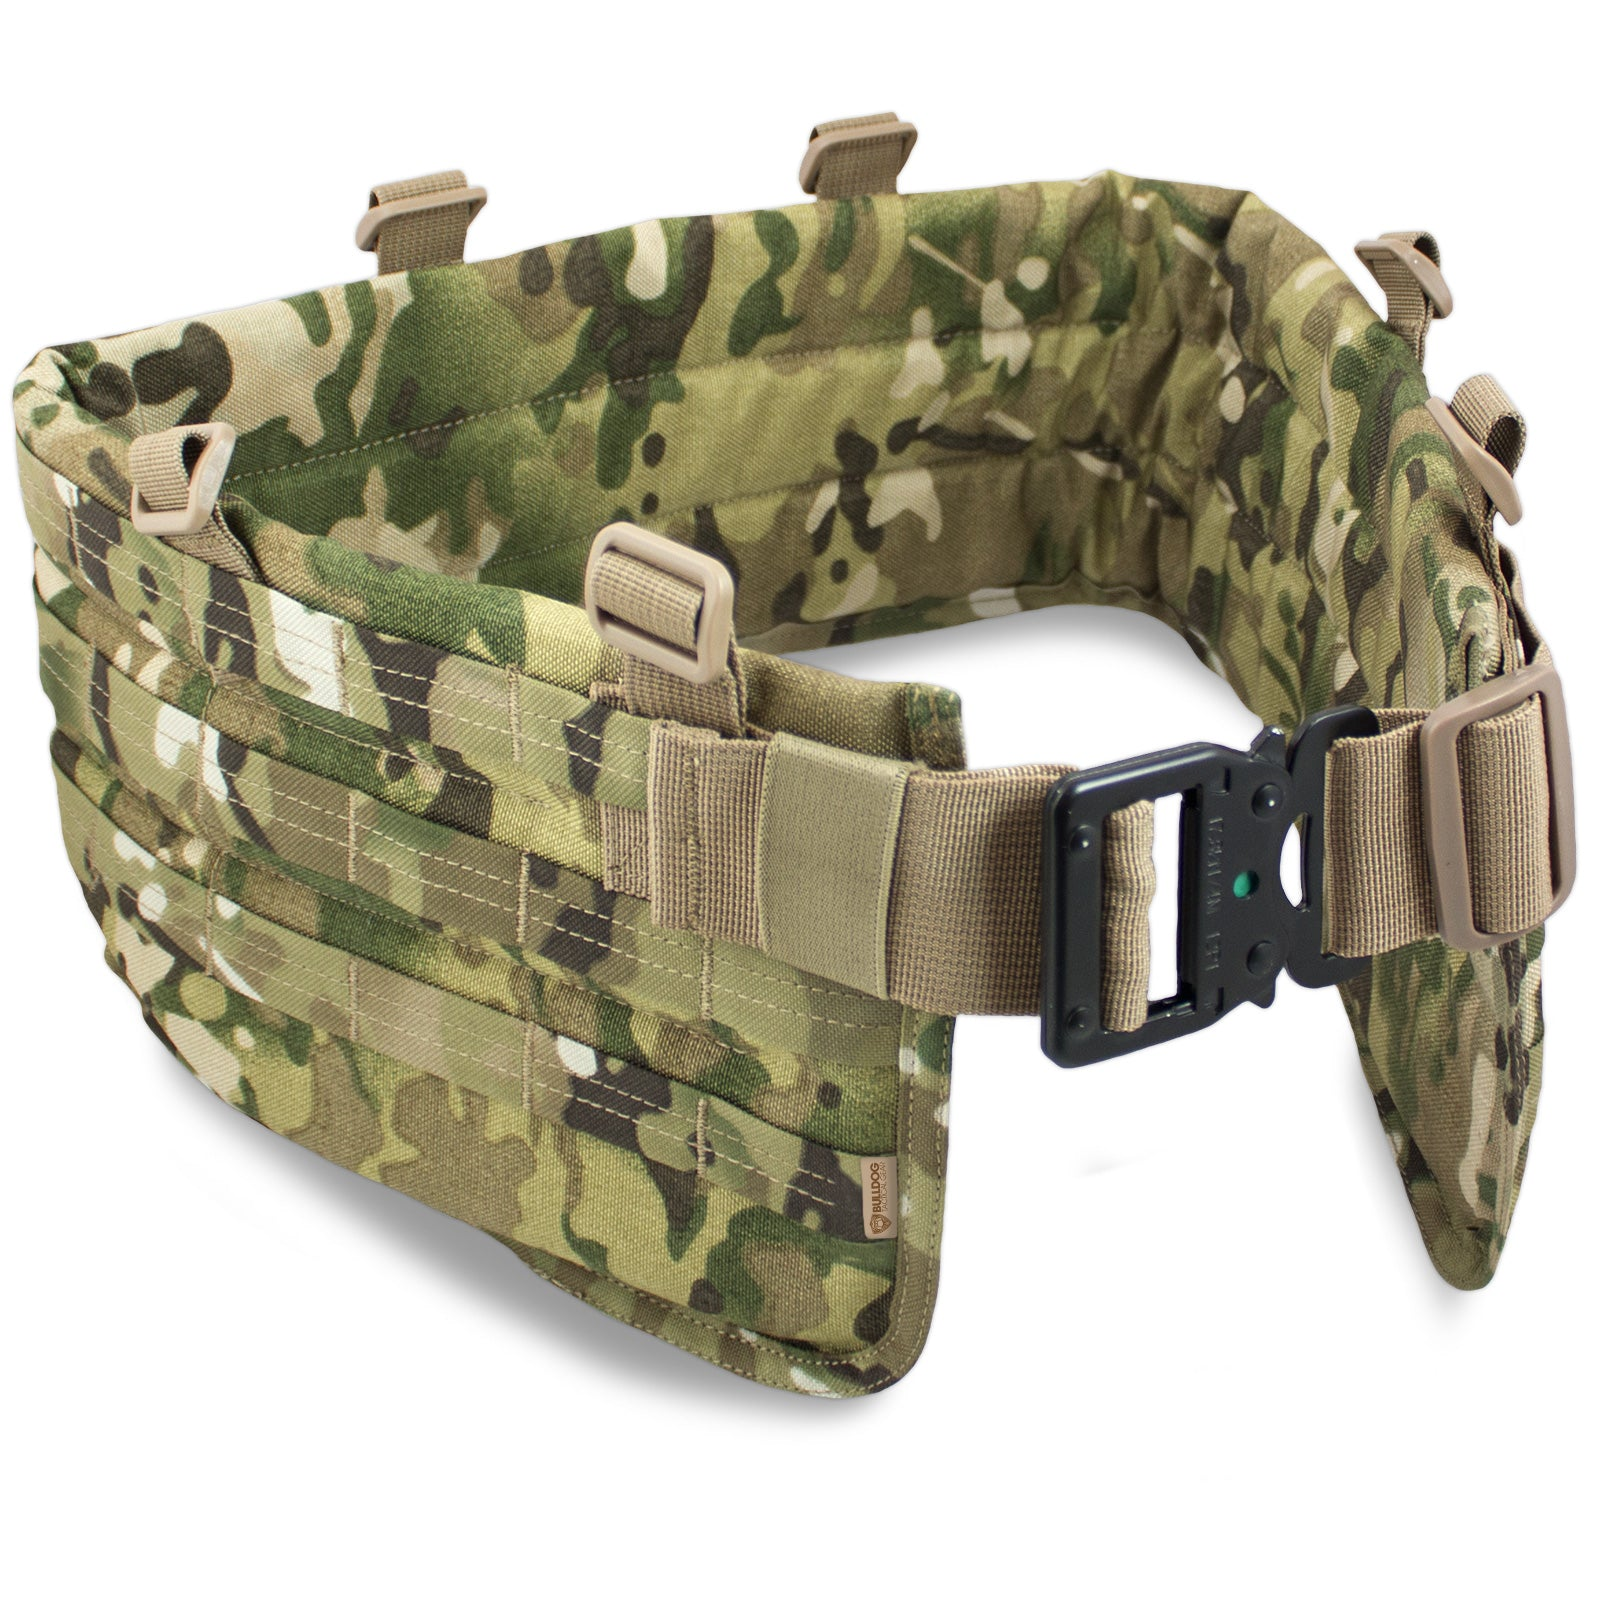 MKII Lightweight MOLLE Belt - Bulldog Tactical Gear